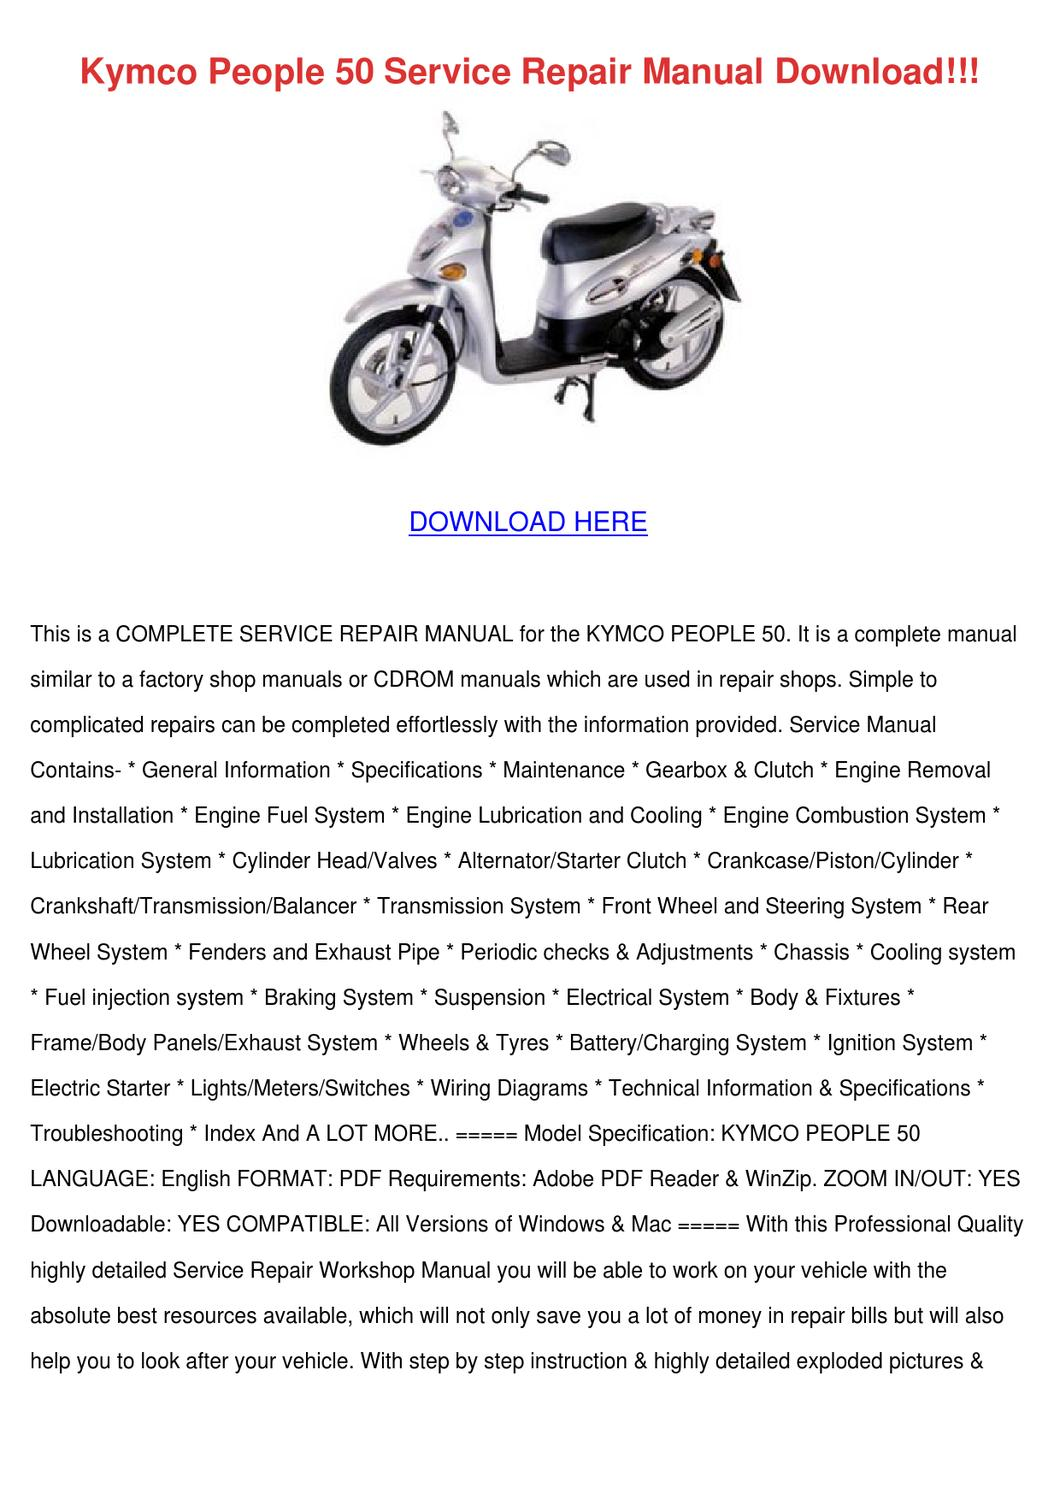 Kymco People 50 Service Repair Manual Downloa by FrederickaEggleston - issuu